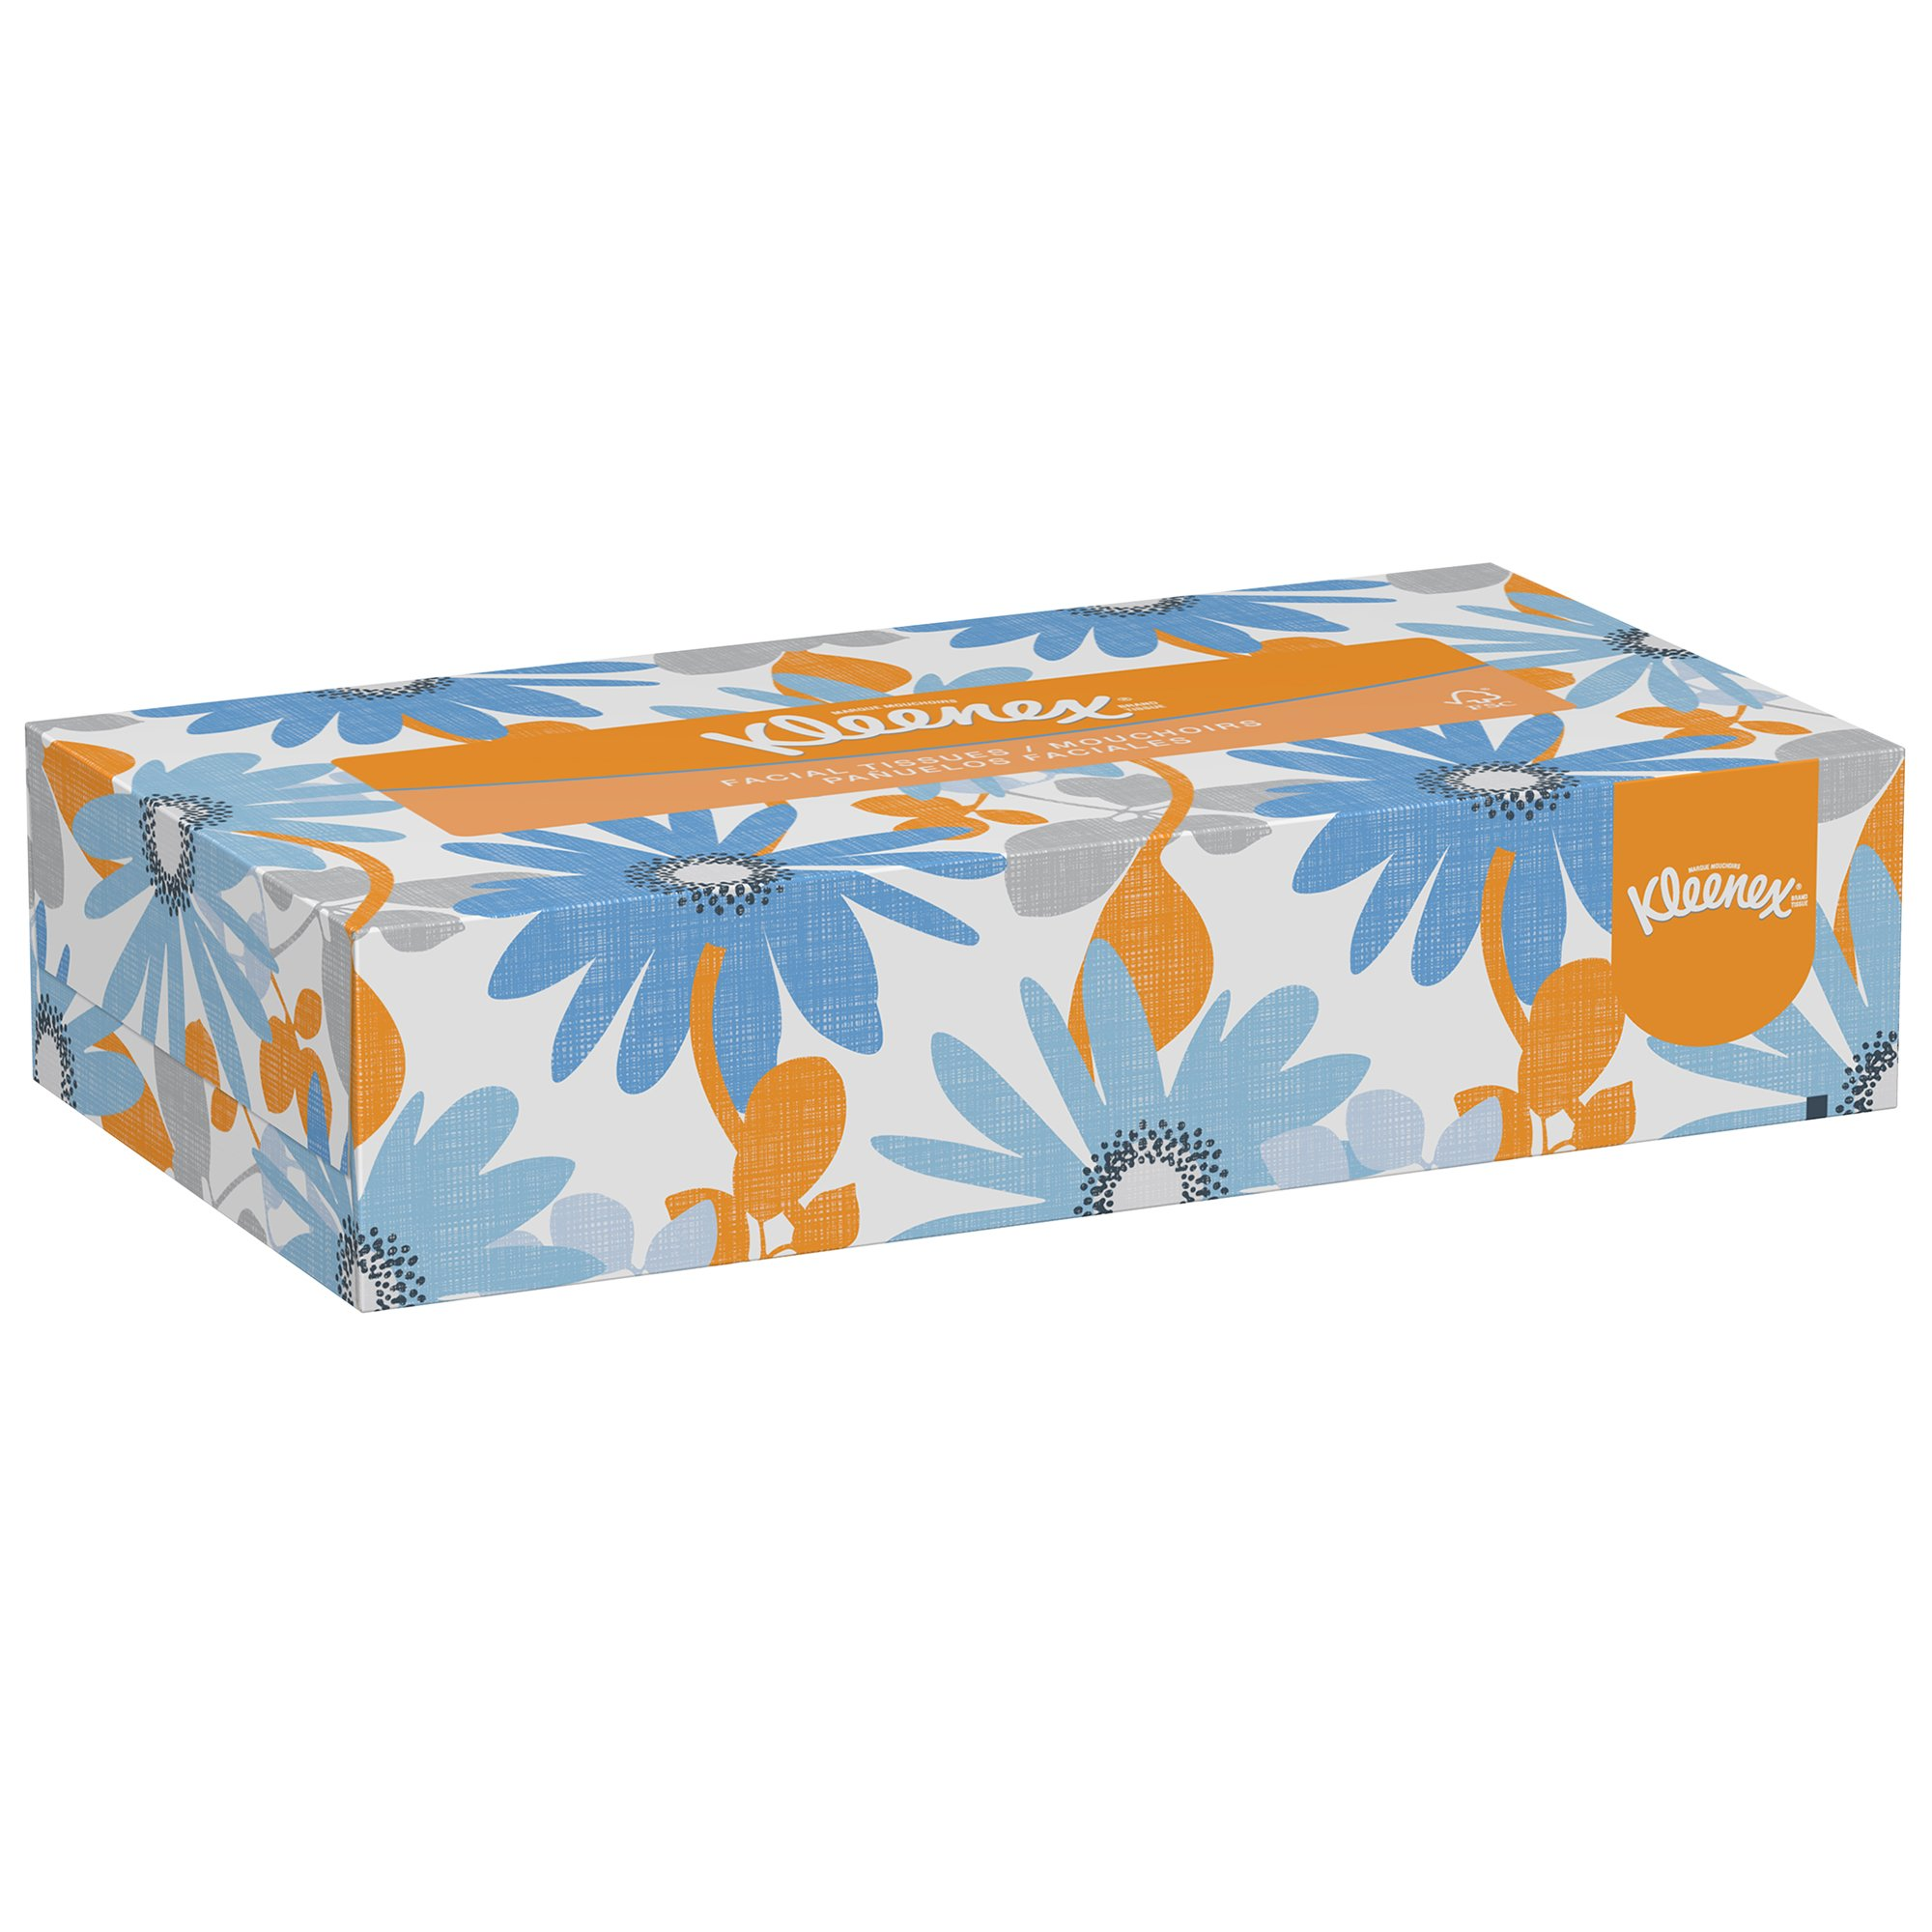 Kleenex Professional Facial Tissue for Business (21400), Flat Tissue Boxes, 36 Boxes/Case, 100 Tissues/Box by Kimberly-Clark Professional